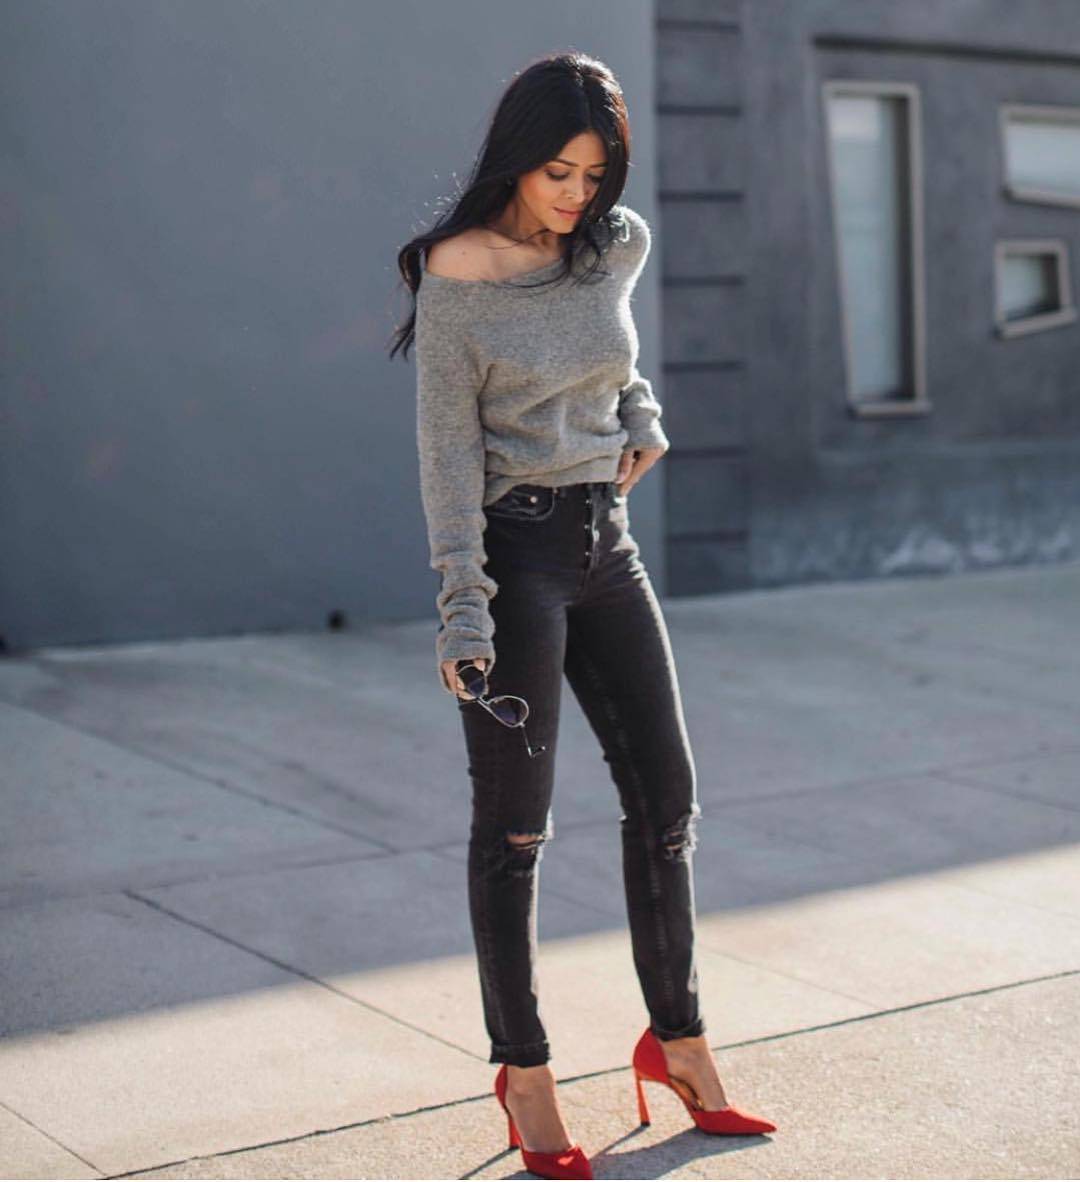 Off Shoulder Grey Sweater With Ripped Jeans And Red Pumps 2020